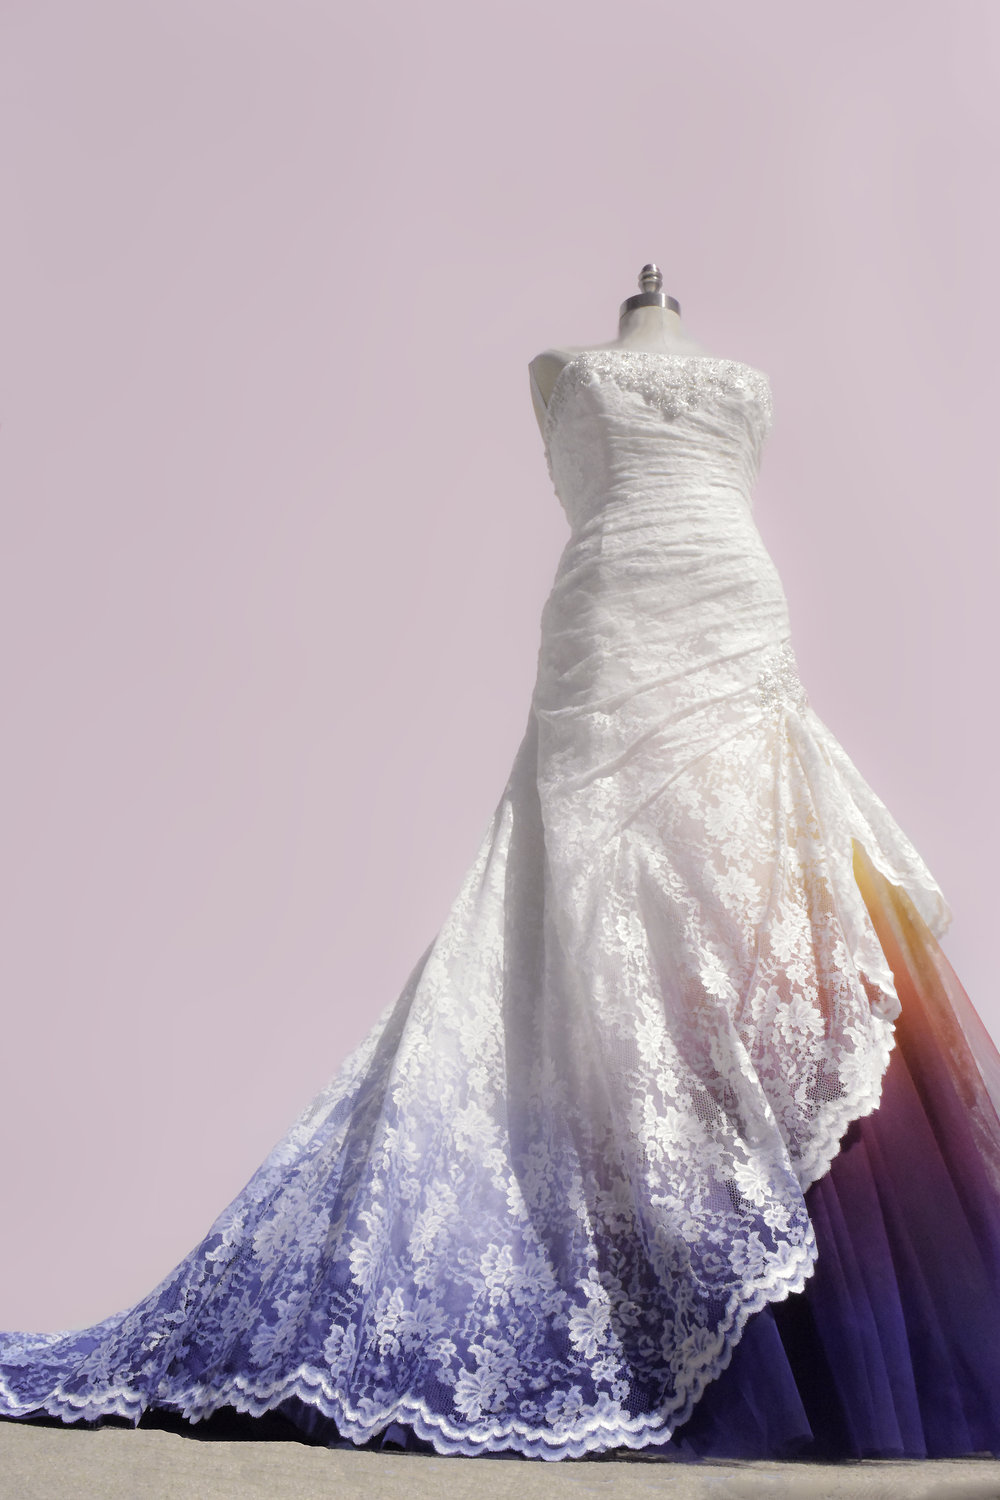 Custom Coloring - Your Dress, Your Colors.